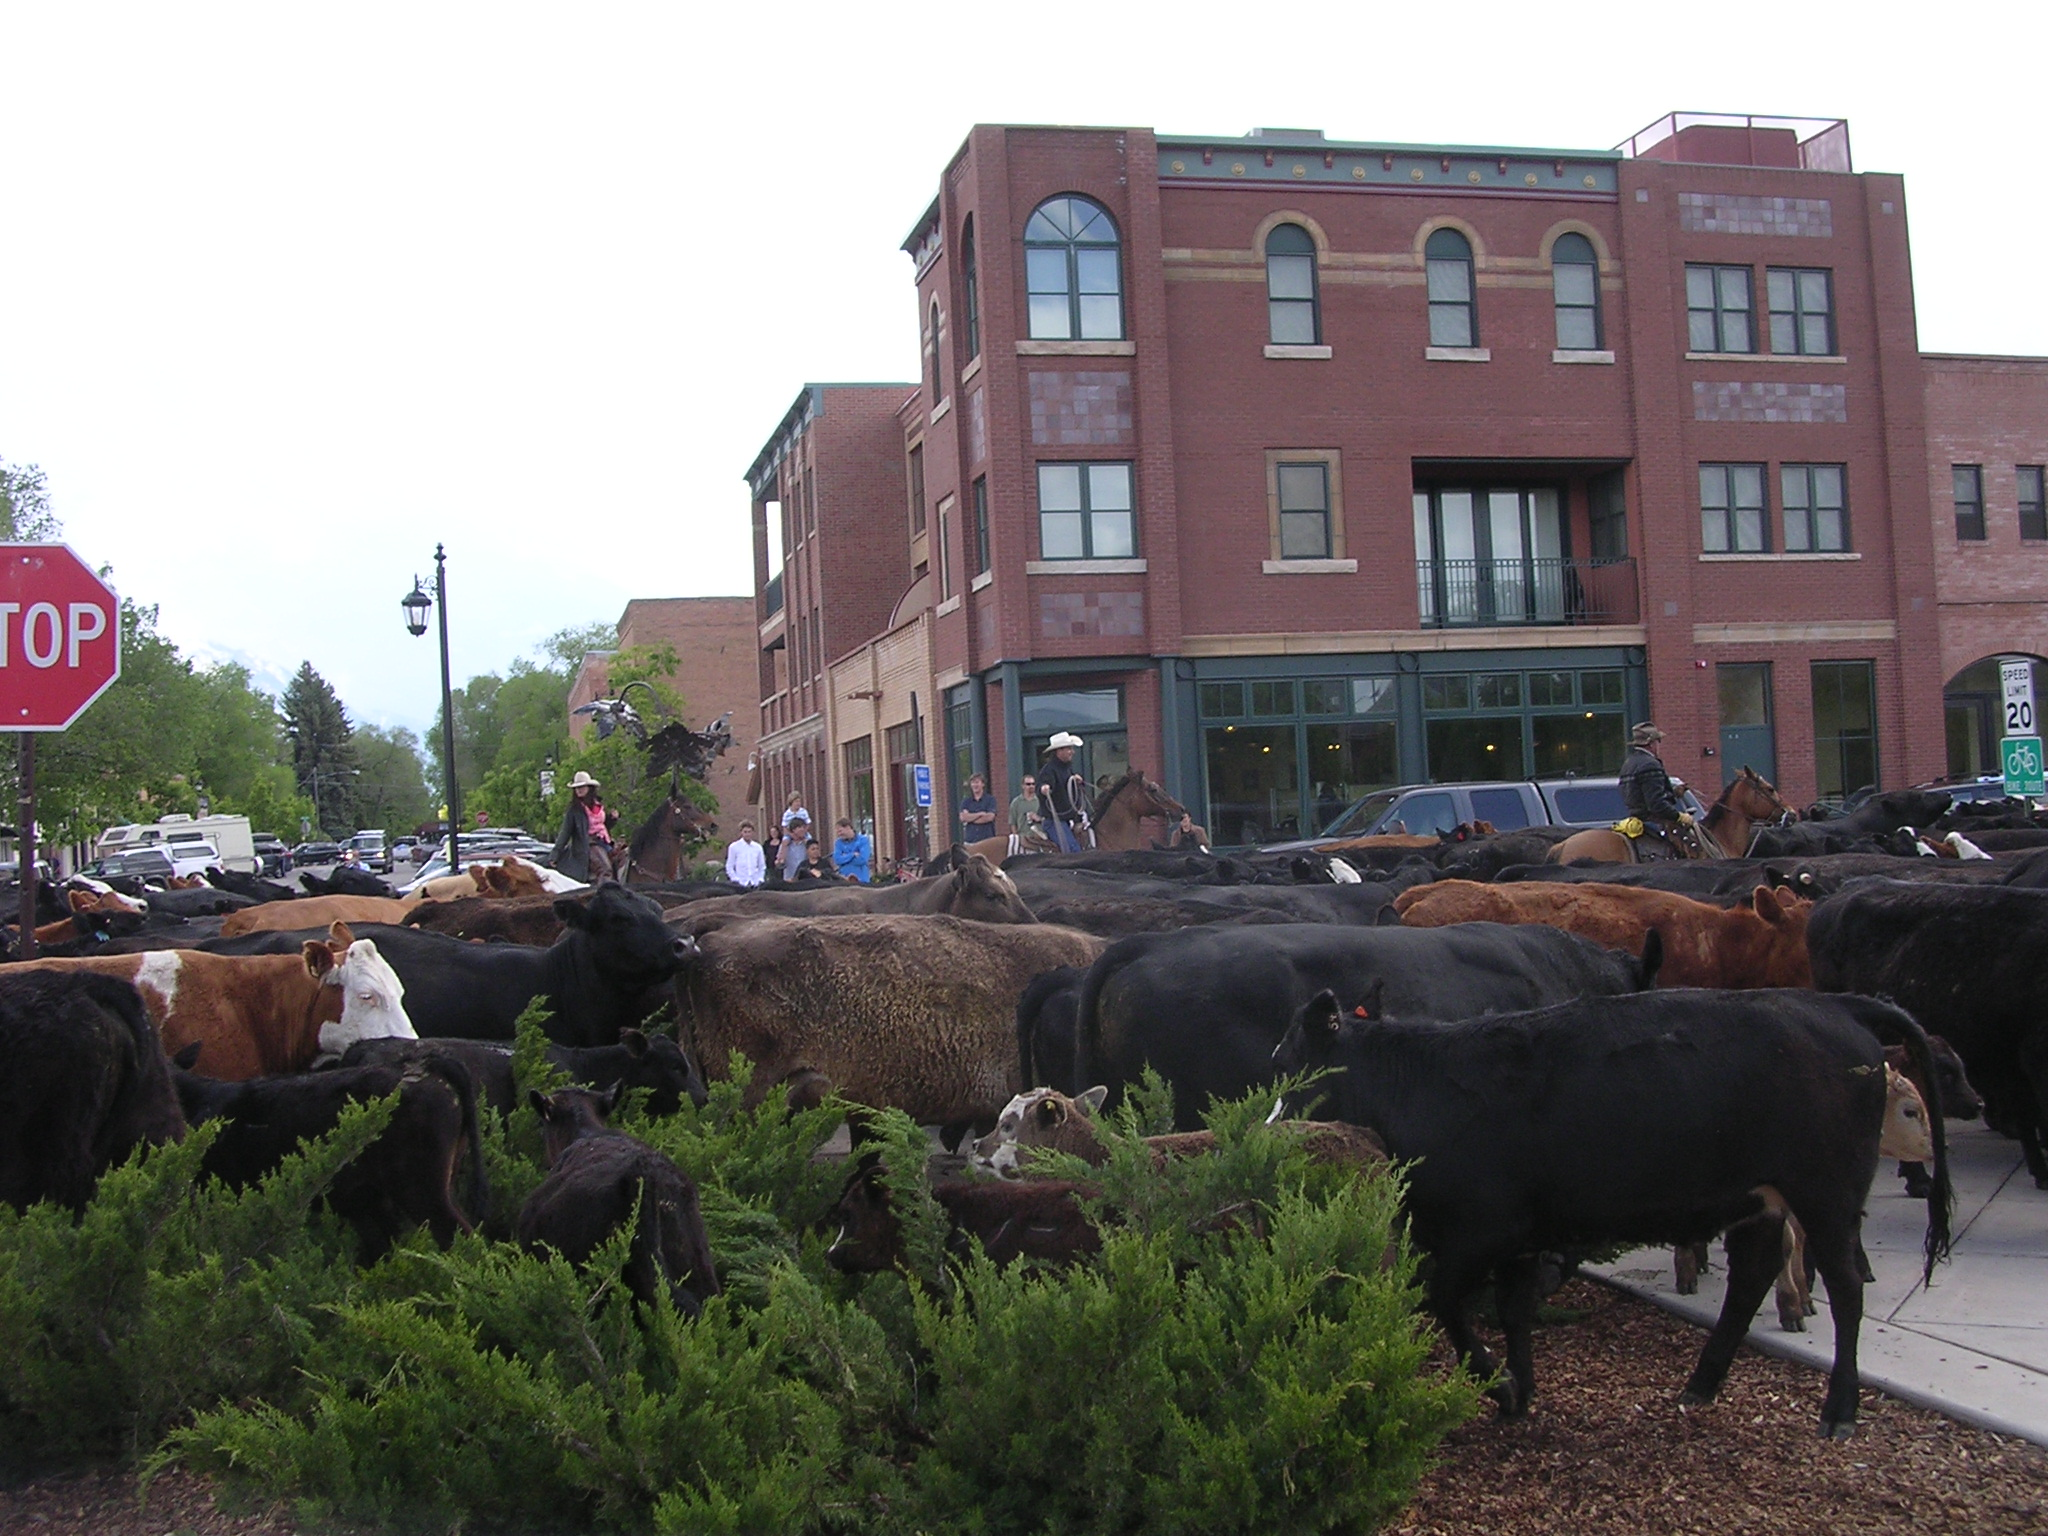 Cattle Drive in Carbondale